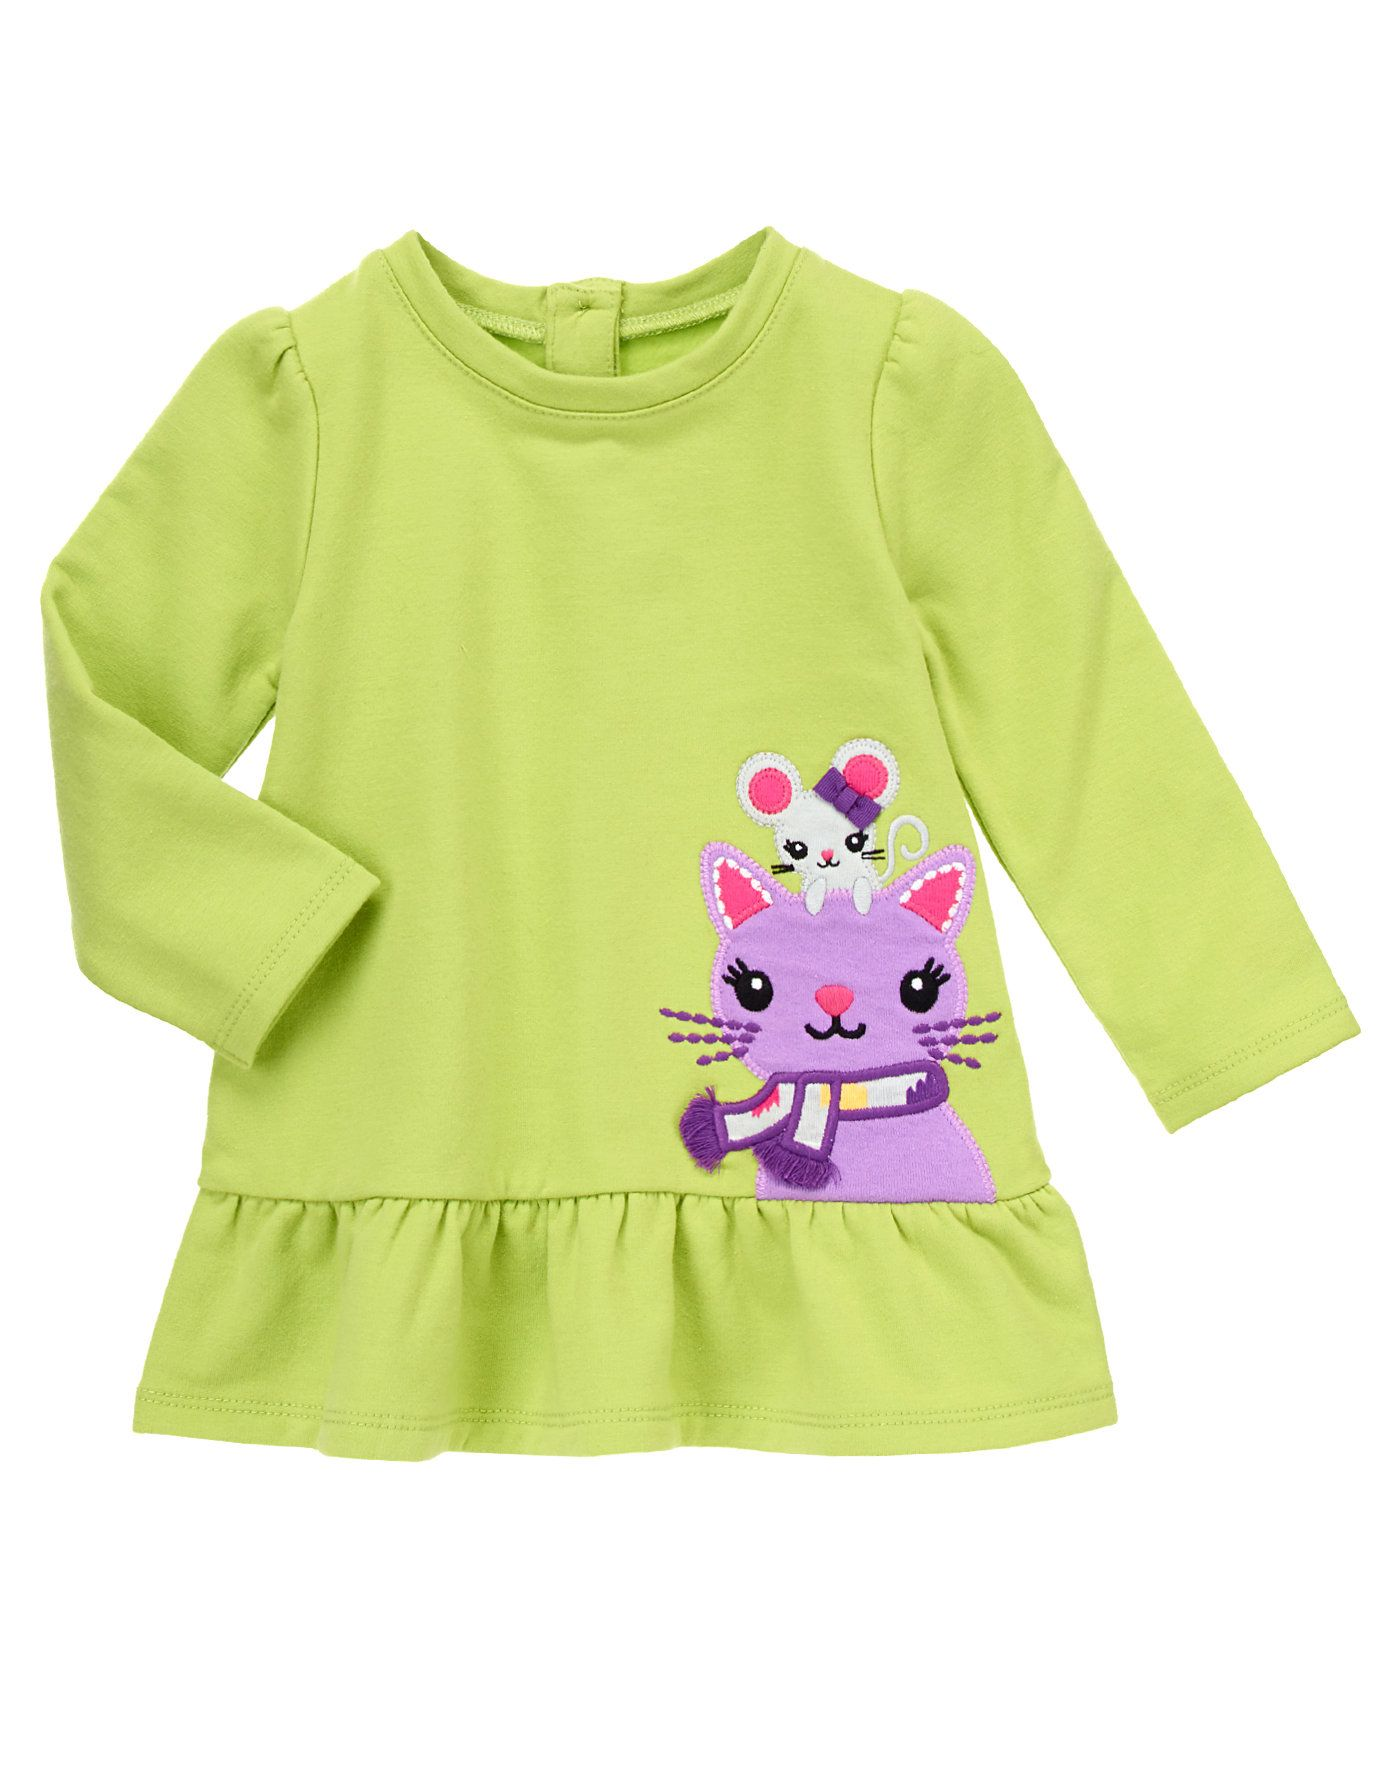 c88da8259bdd Supremely soft and cozy French terry fleece top features cute mouse ...